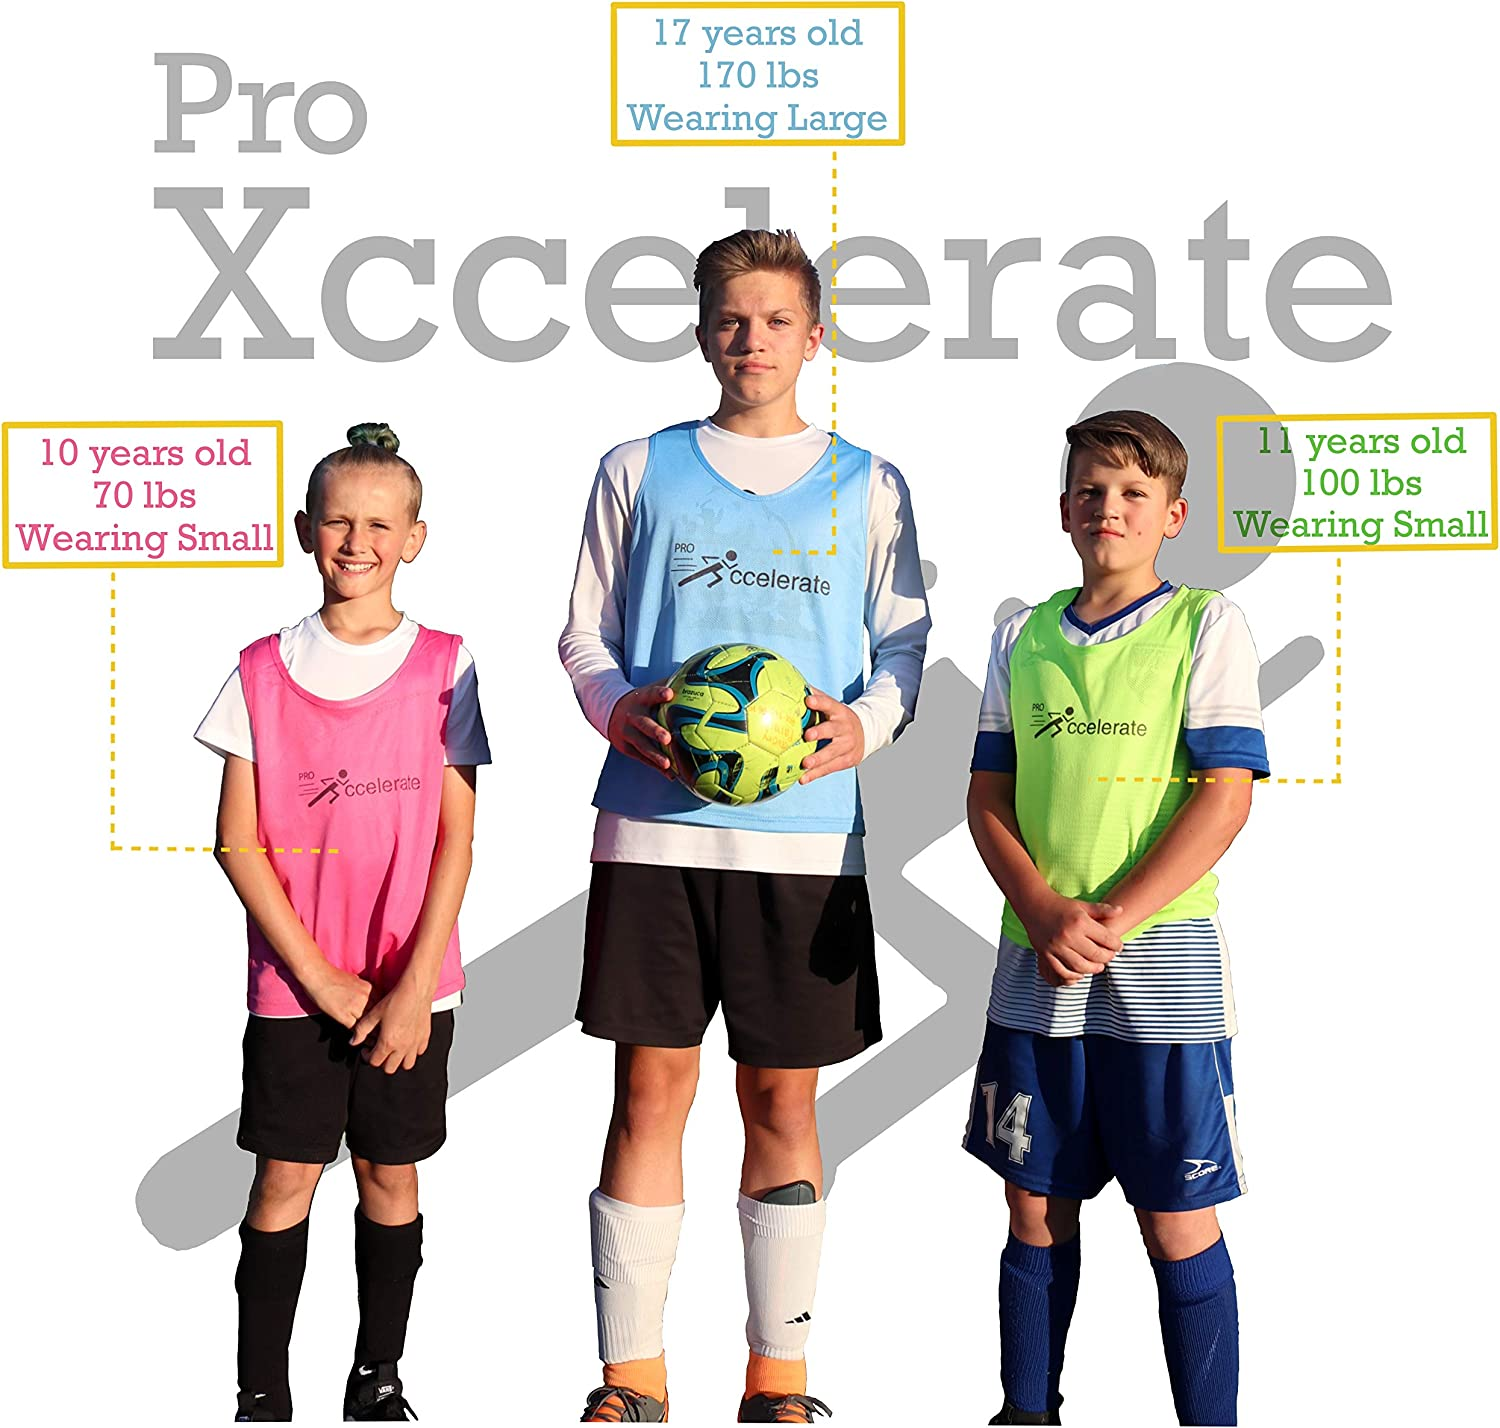 Scrimmage Vest Football Basketball Pinnies for Soccer Pro Xccelerate Practice Jersey Hockey-12 Pack